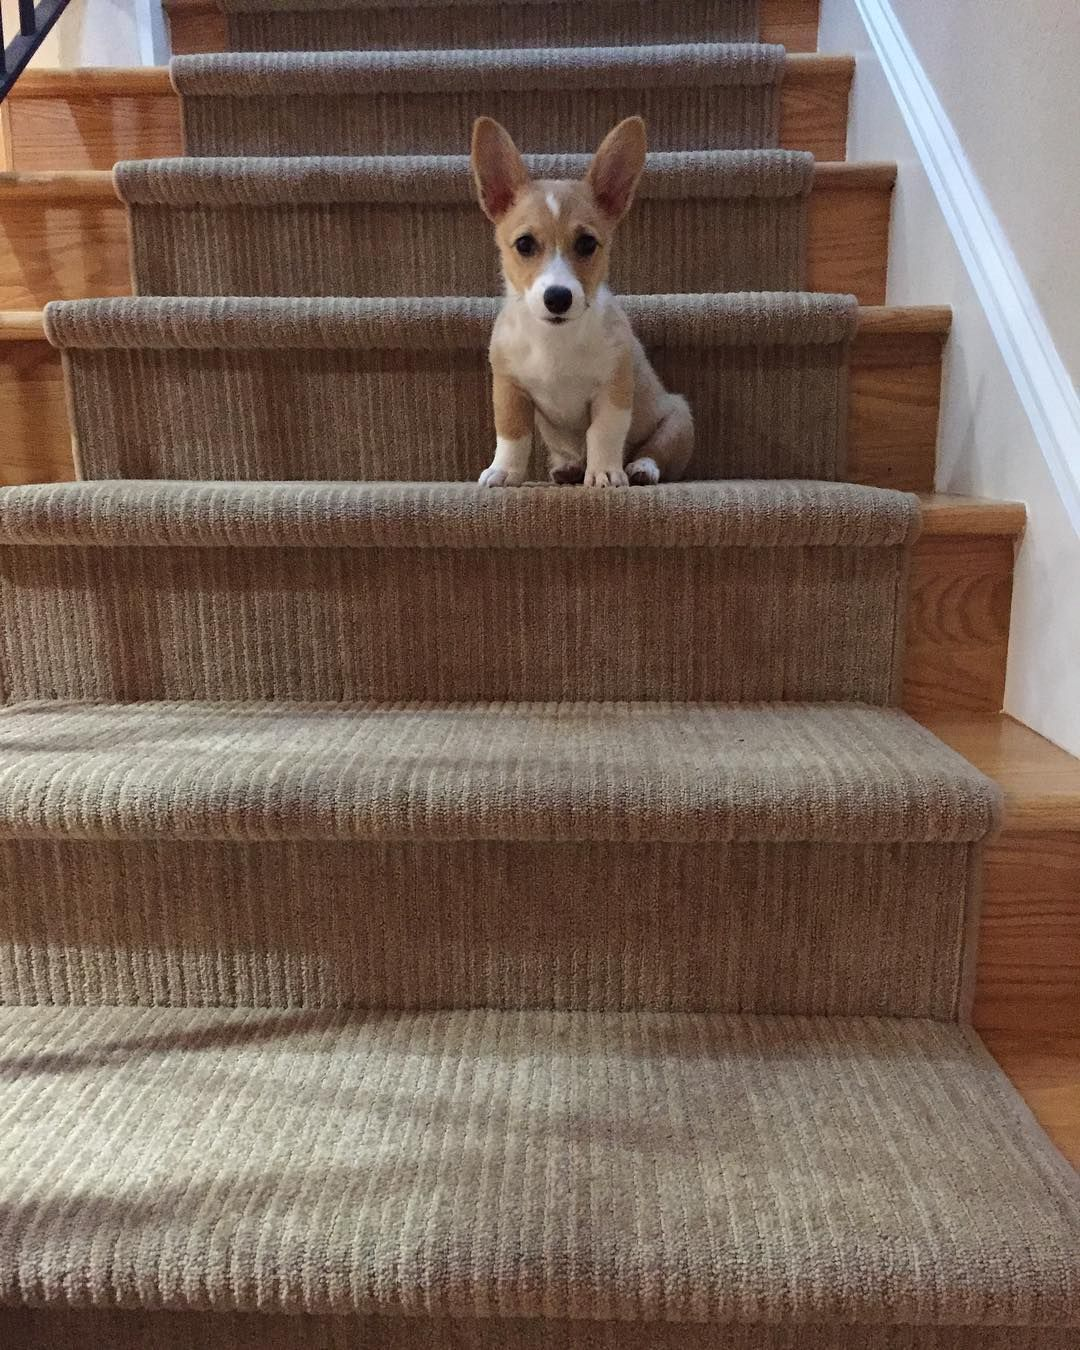 I Love Going Up The Stairs But I Can Never Seem To Get Down